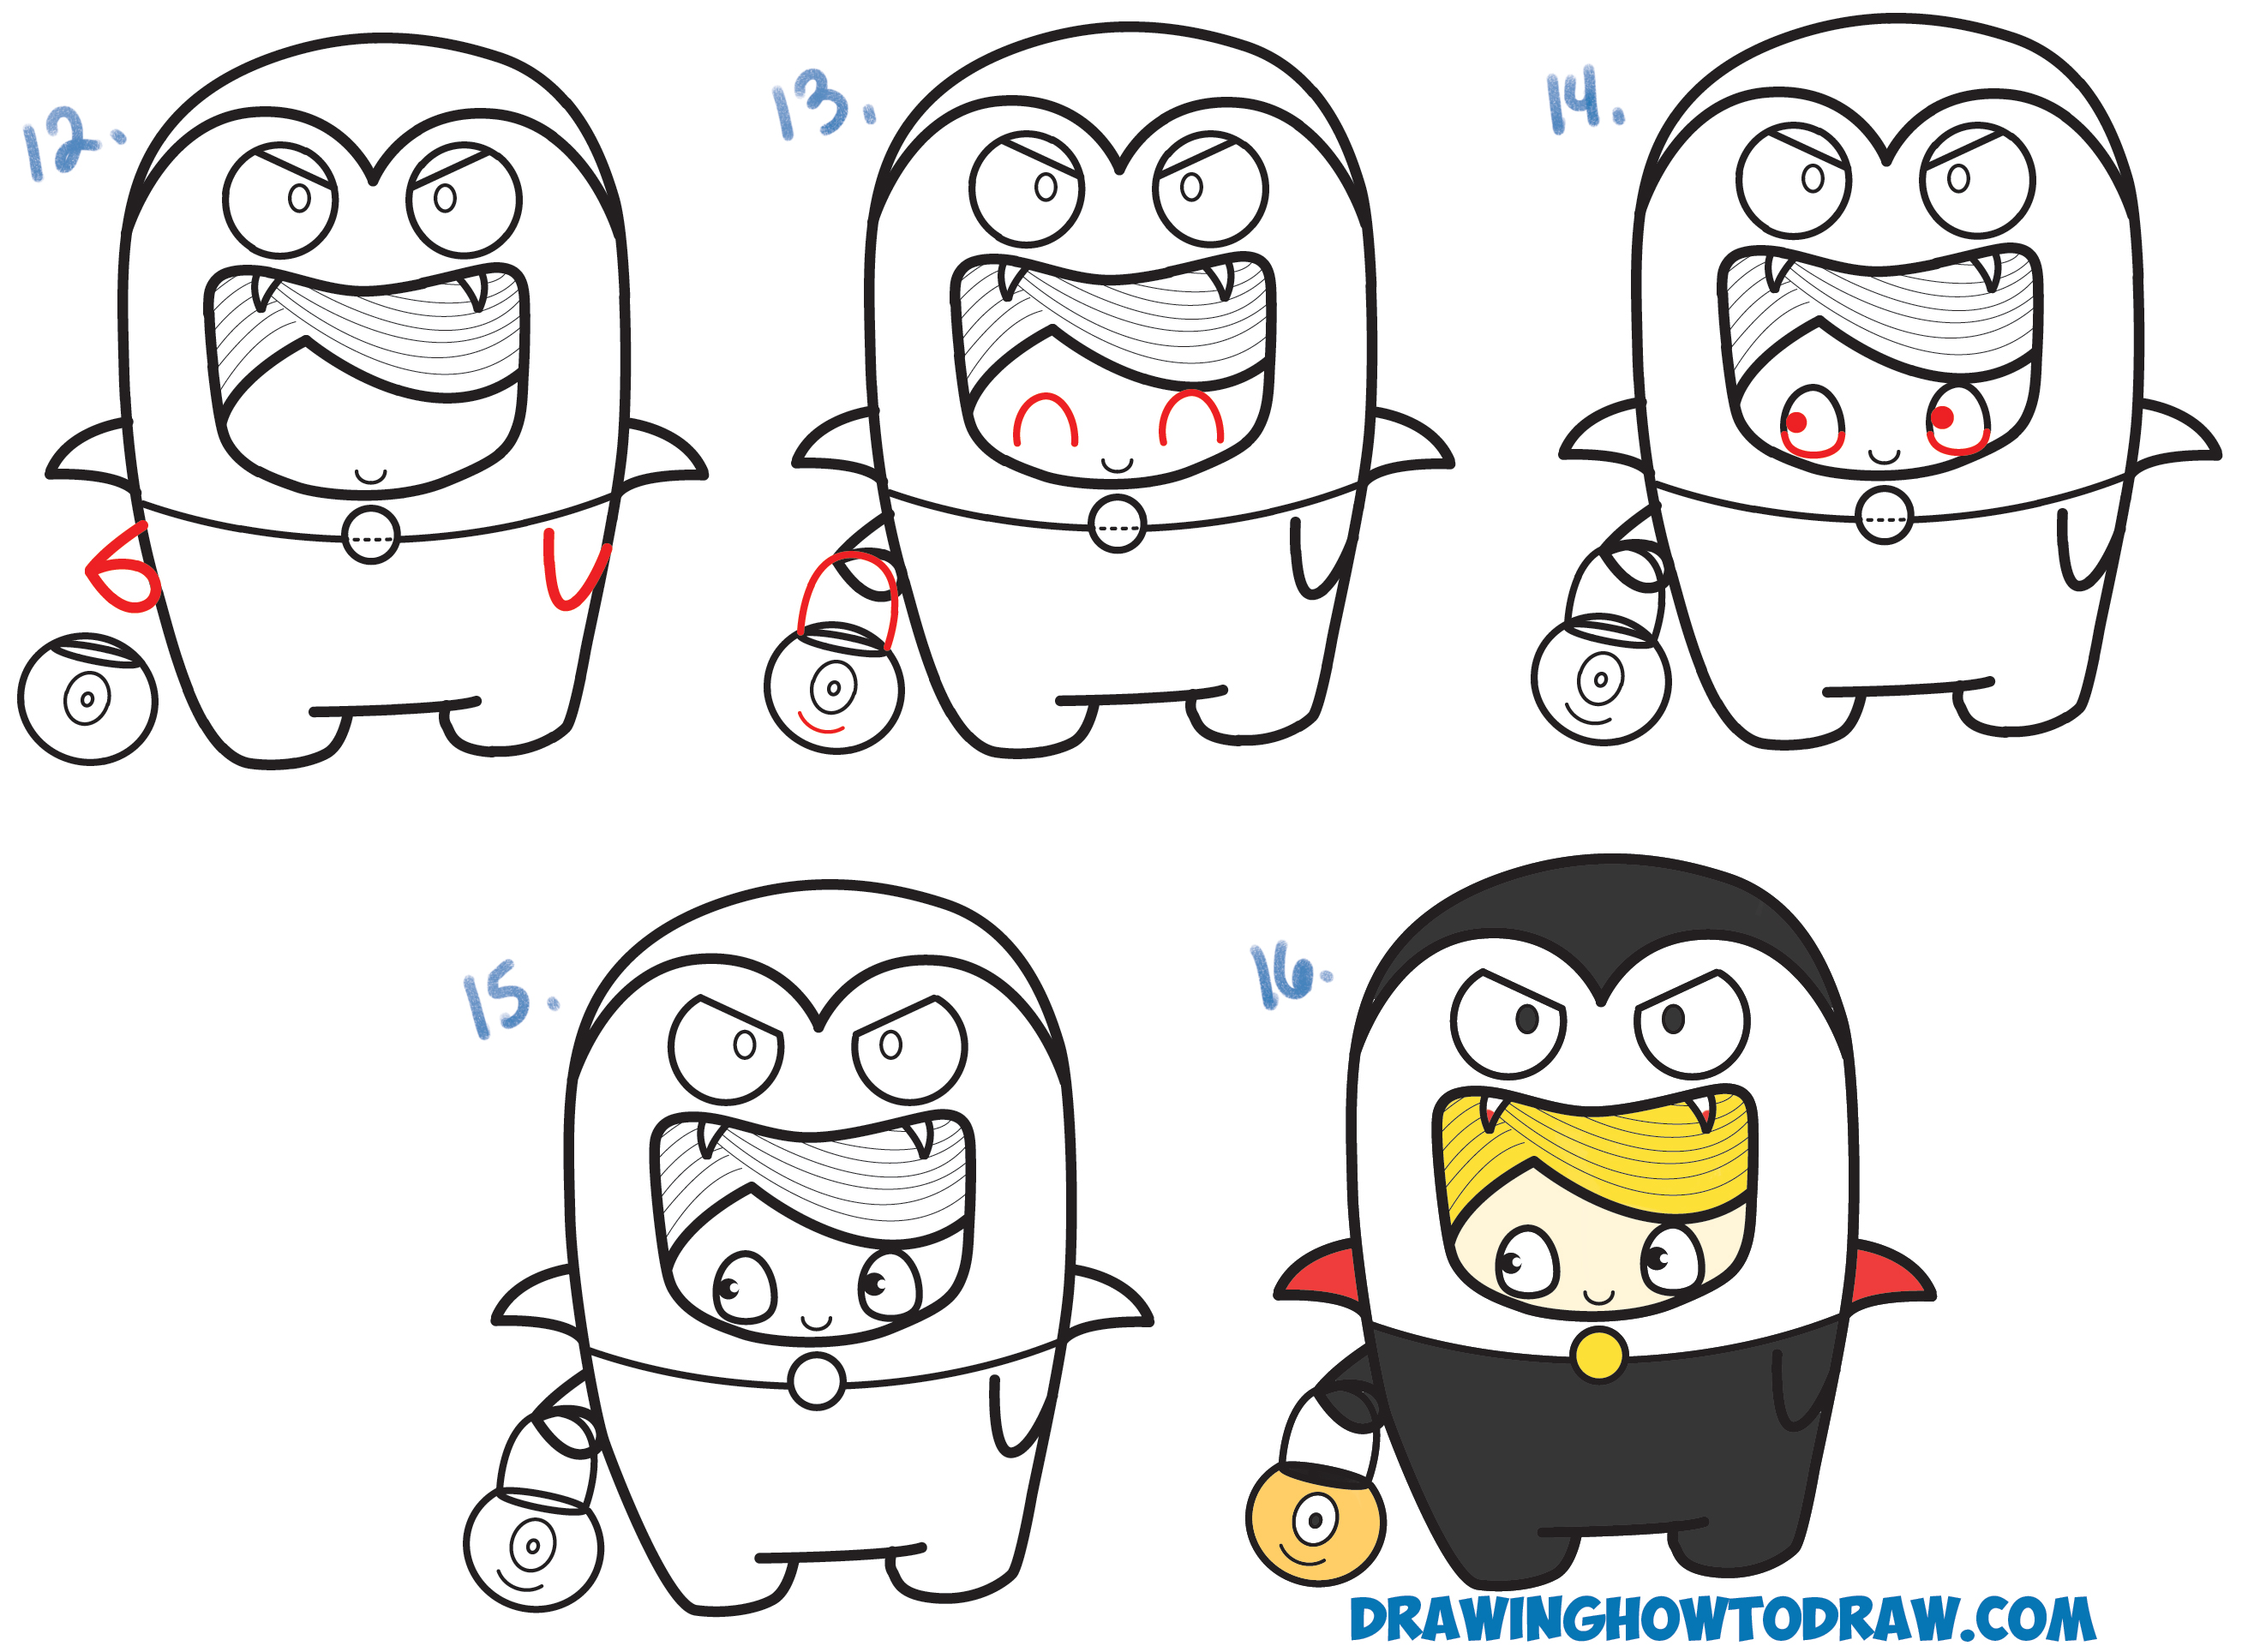 Learn How to Draw a Kid in a Halloween Vampire Costume (Cute Kawaii) Simple Steps Drawing Lesson for Beginners